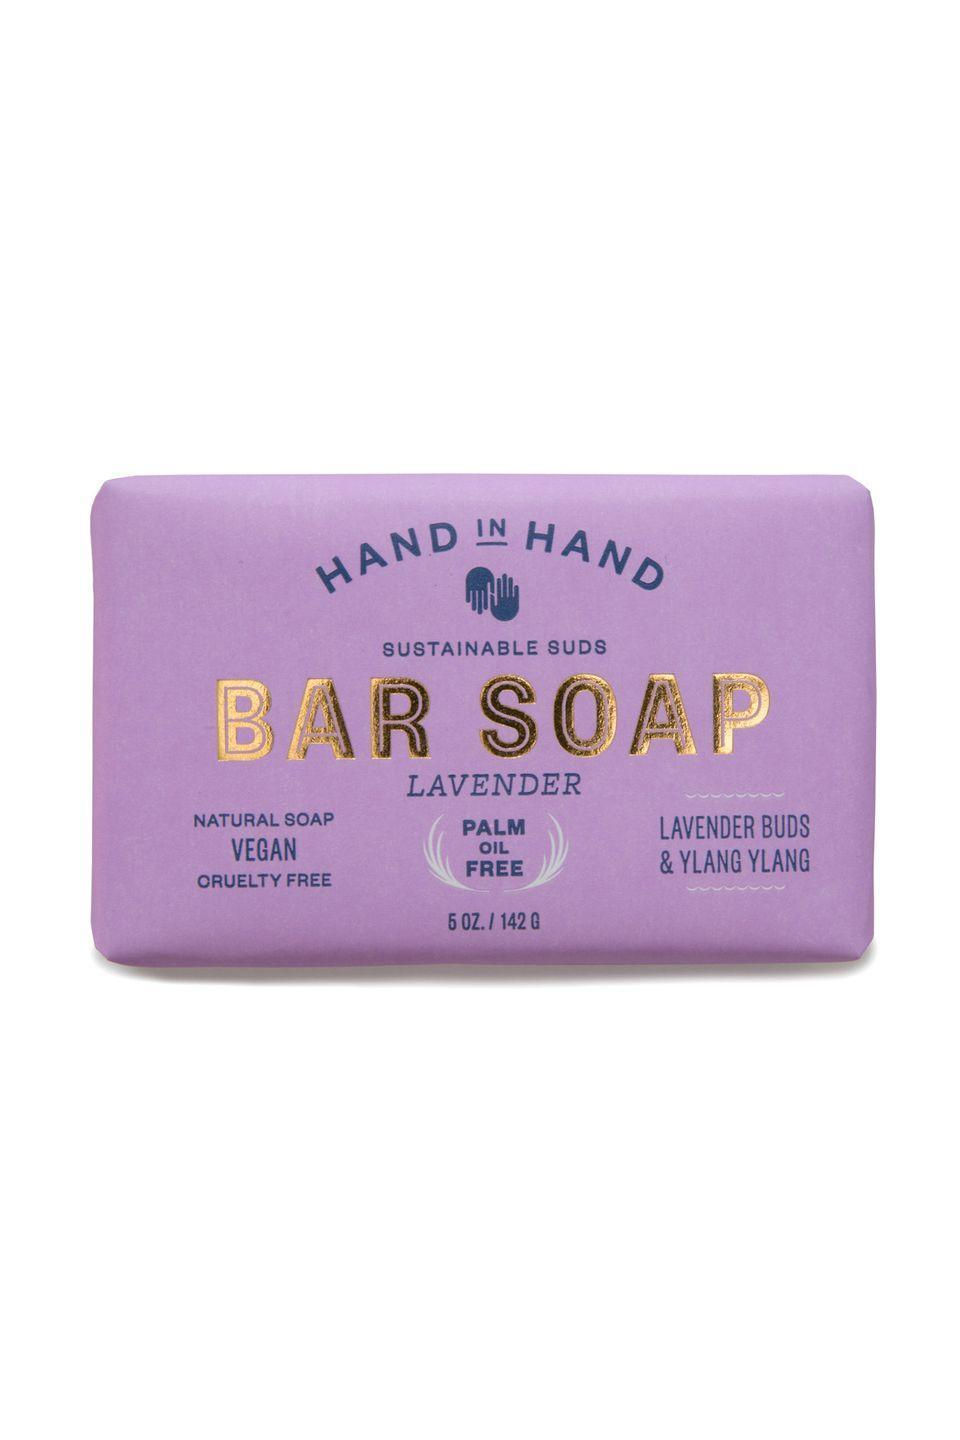 "<p>$6</p><p><a class=""link rapid-noclick-resp"" href=""https://go.redirectingat.com?id=74968X1596630&url=https%3A%2F%2Fwww.handinhandsoap.com%2Fcollections%2Fbar-soap&sref=https%3A%2F%2Fwww.womansday.com%2Flife%2Fwork-money%2Fg2775%2Fcharitable-gifts-that-give-back%2F"" rel=""nofollow noopener"" target=""_blank"" data-ylk=""slk:SHOP NOW"">SHOP NOW</a></p><p>Buy this all-natural, lightly fragranced soap and <a href=""https://www.handinhandsoap.com/"" rel=""nofollow noopener"" target=""_blank"" data-ylk=""slk:Hand in Hand"" class=""link rapid-noclick-resp"">Hand in Hand</a> will give a bar <em>and</em> a month of clean <a href=""https://www.womansday.com/health-fitness/nutrition/a22160984/veronica-schoor-weight-loss-success/"" rel=""nofollow noopener"" target=""_blank"" data-ylk=""slk:water"" class=""link rapid-noclick-resp"">water</a> to a community in need.</p>"